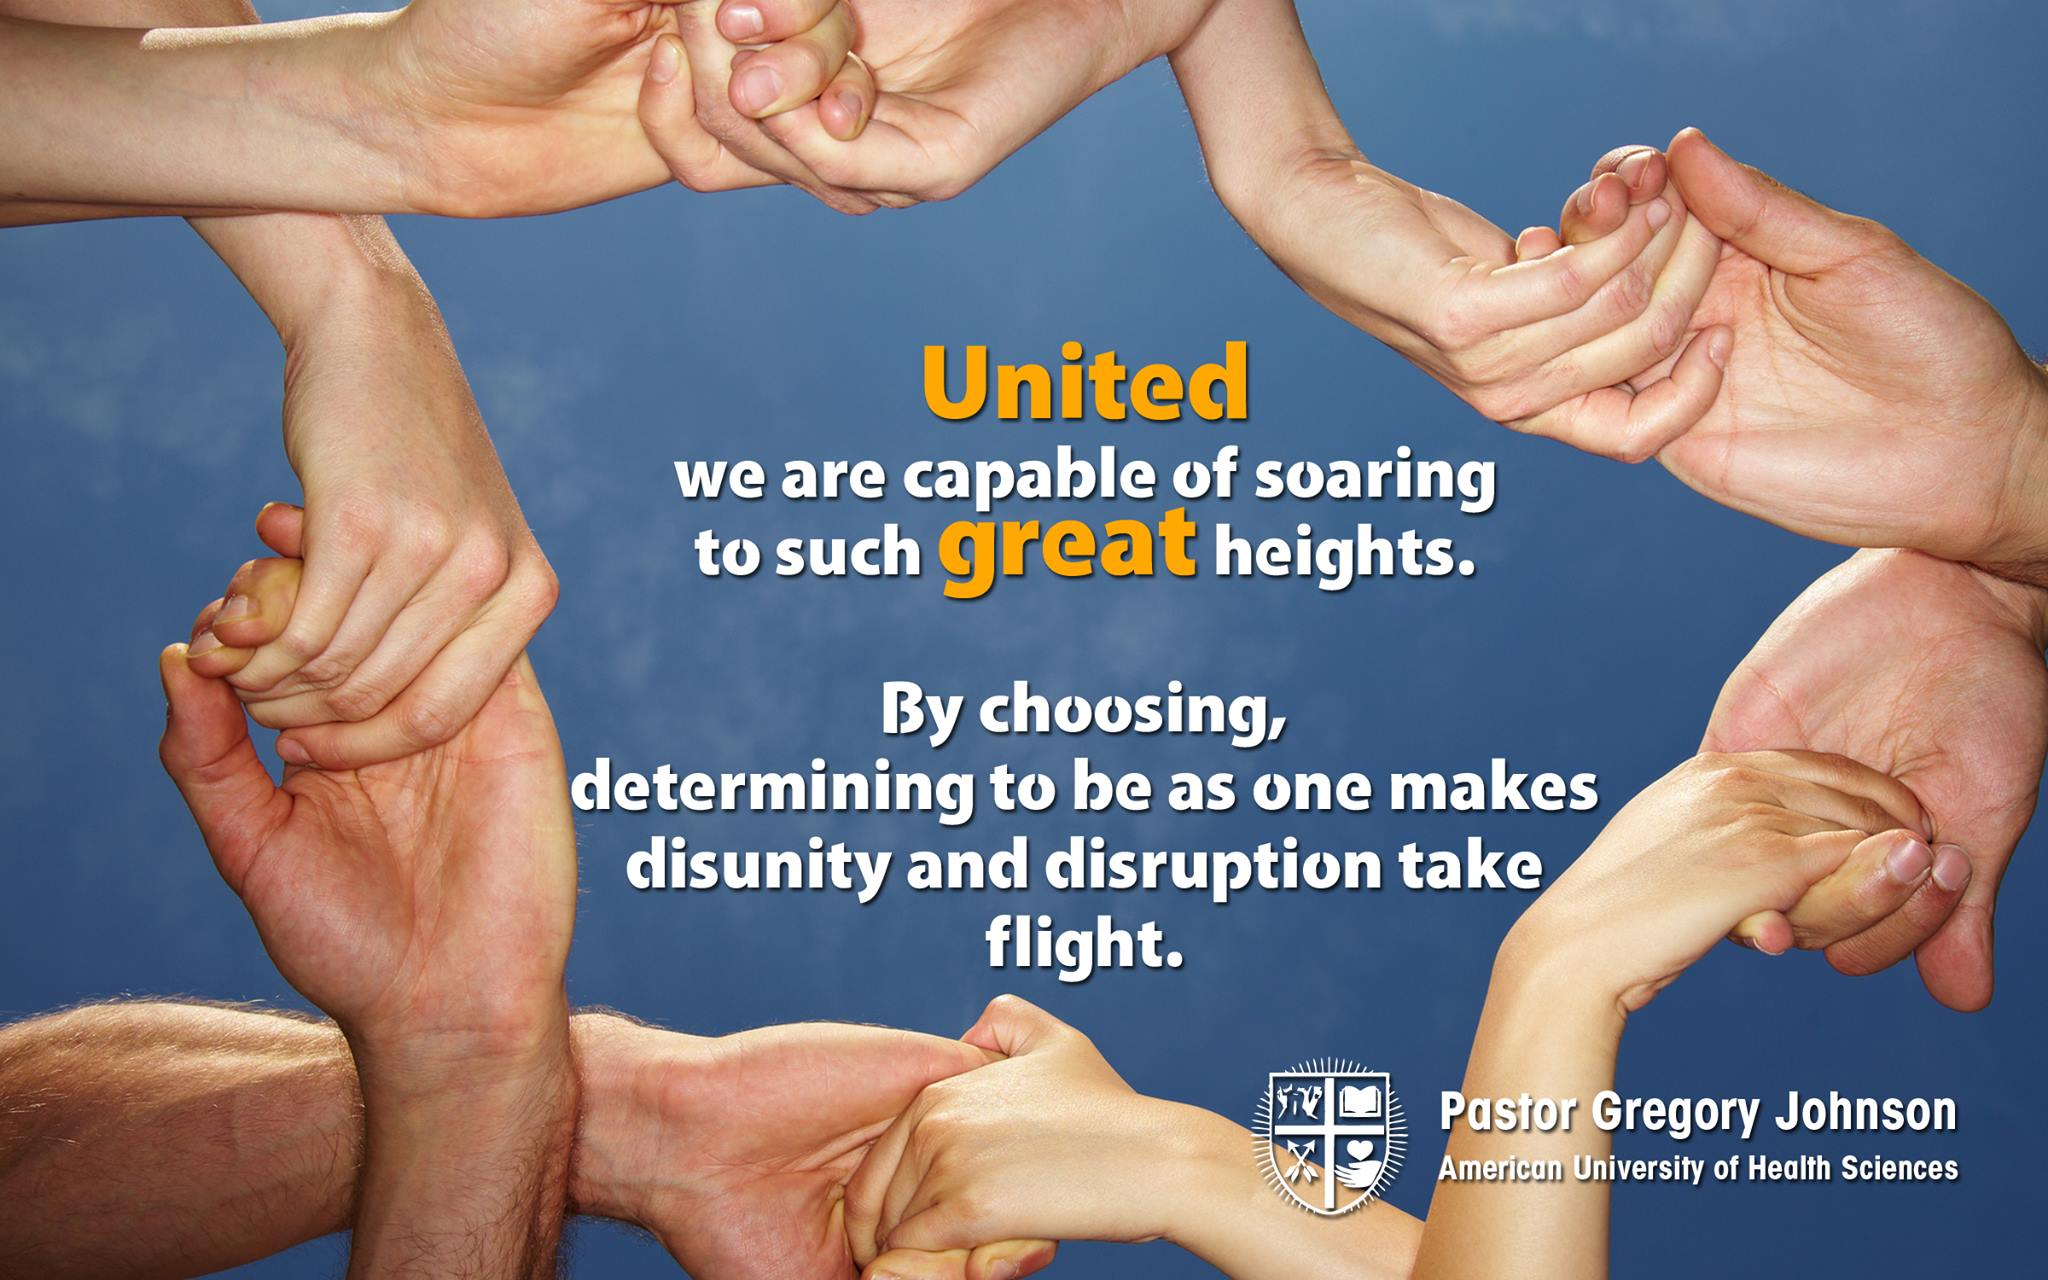 United we are capable of soaring…